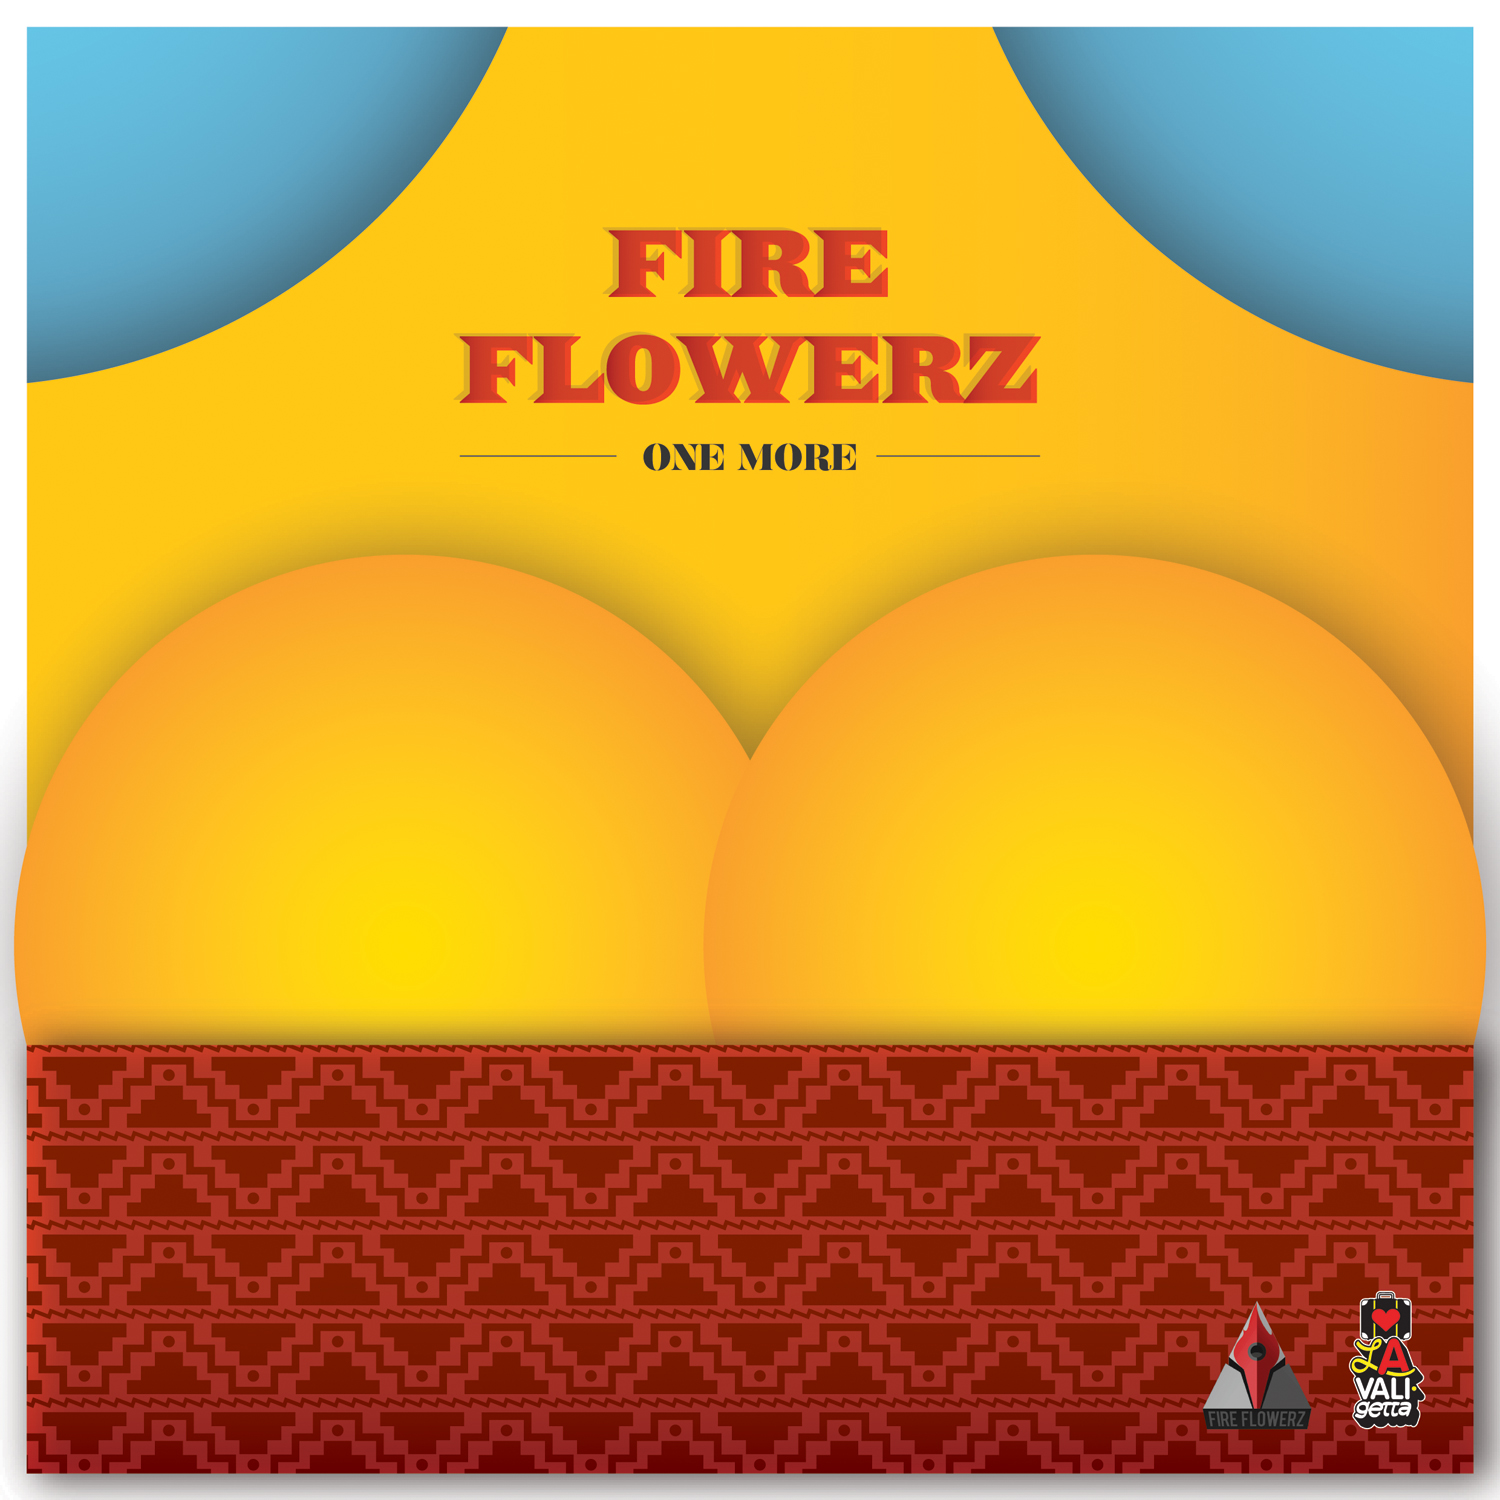 DV045 / Fire Flowerz - One More